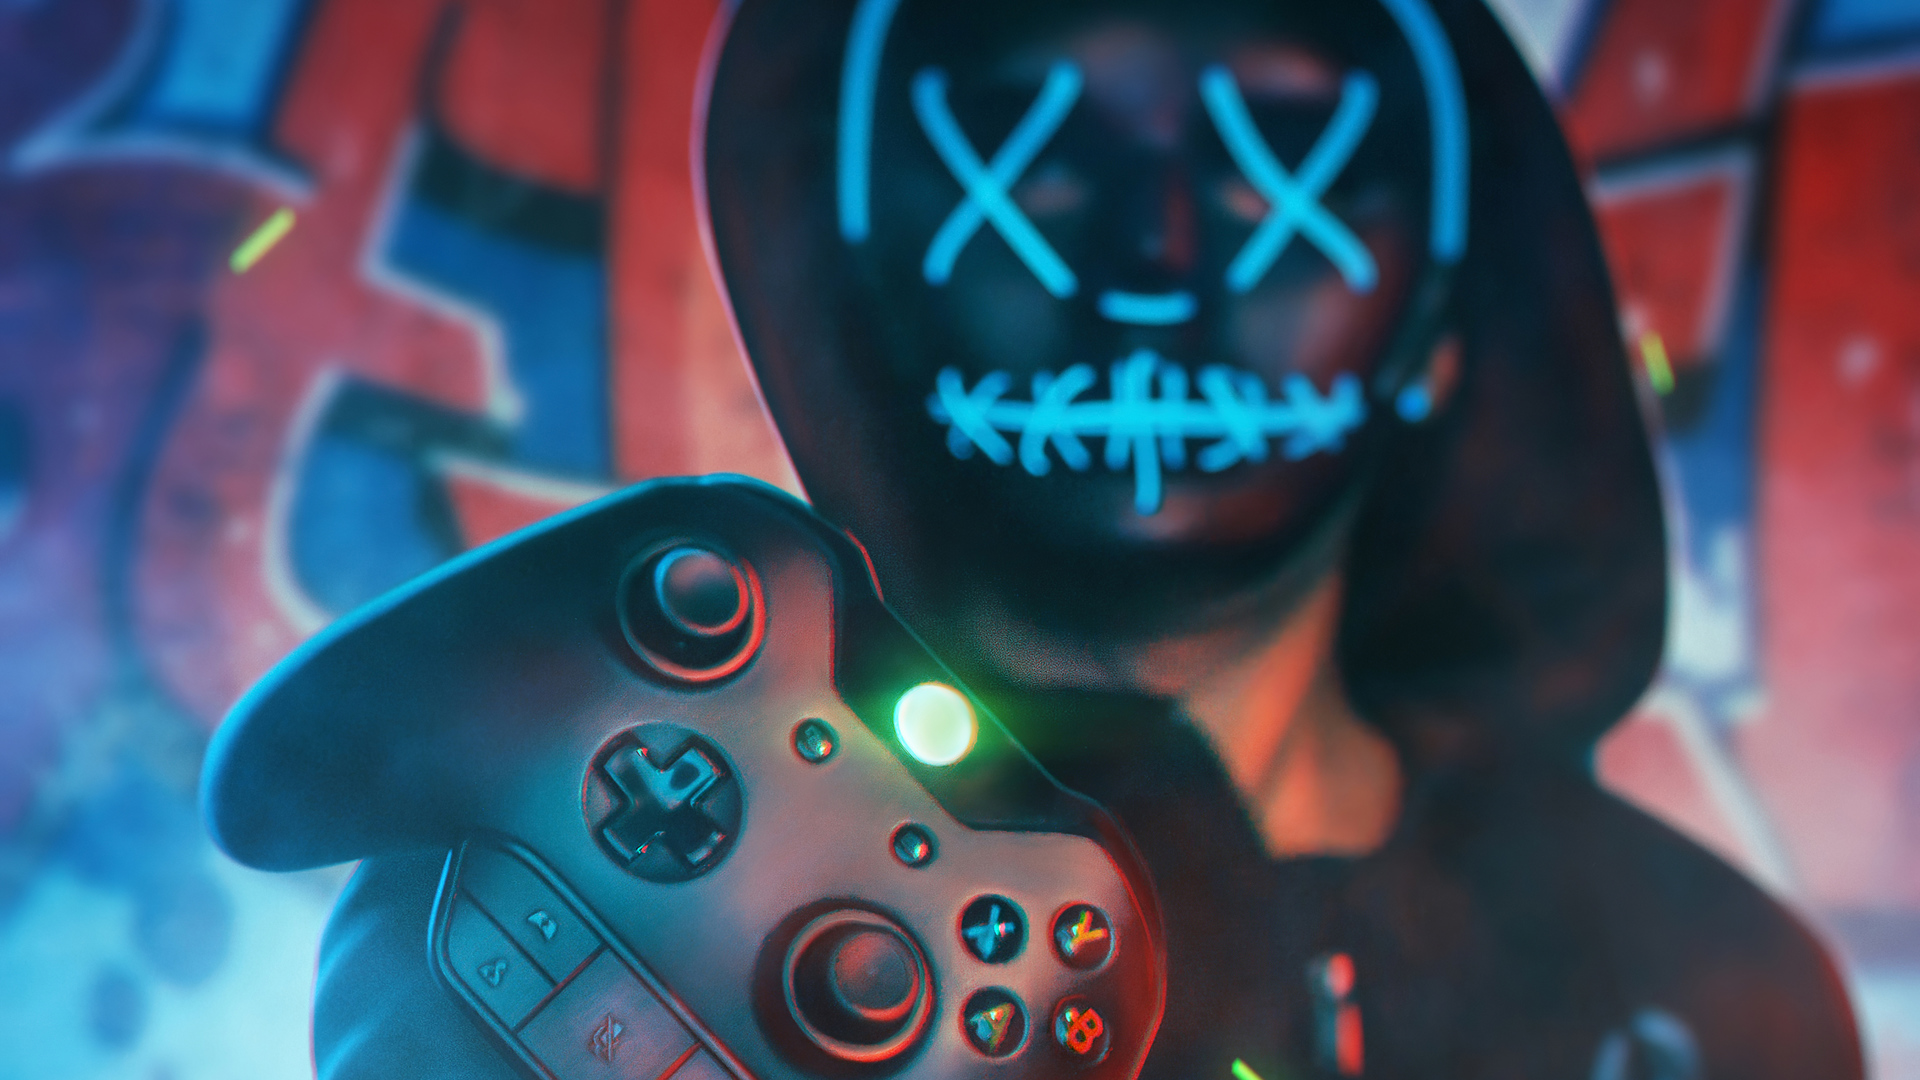 Get Best Gaming Wallpapers 2020 Images